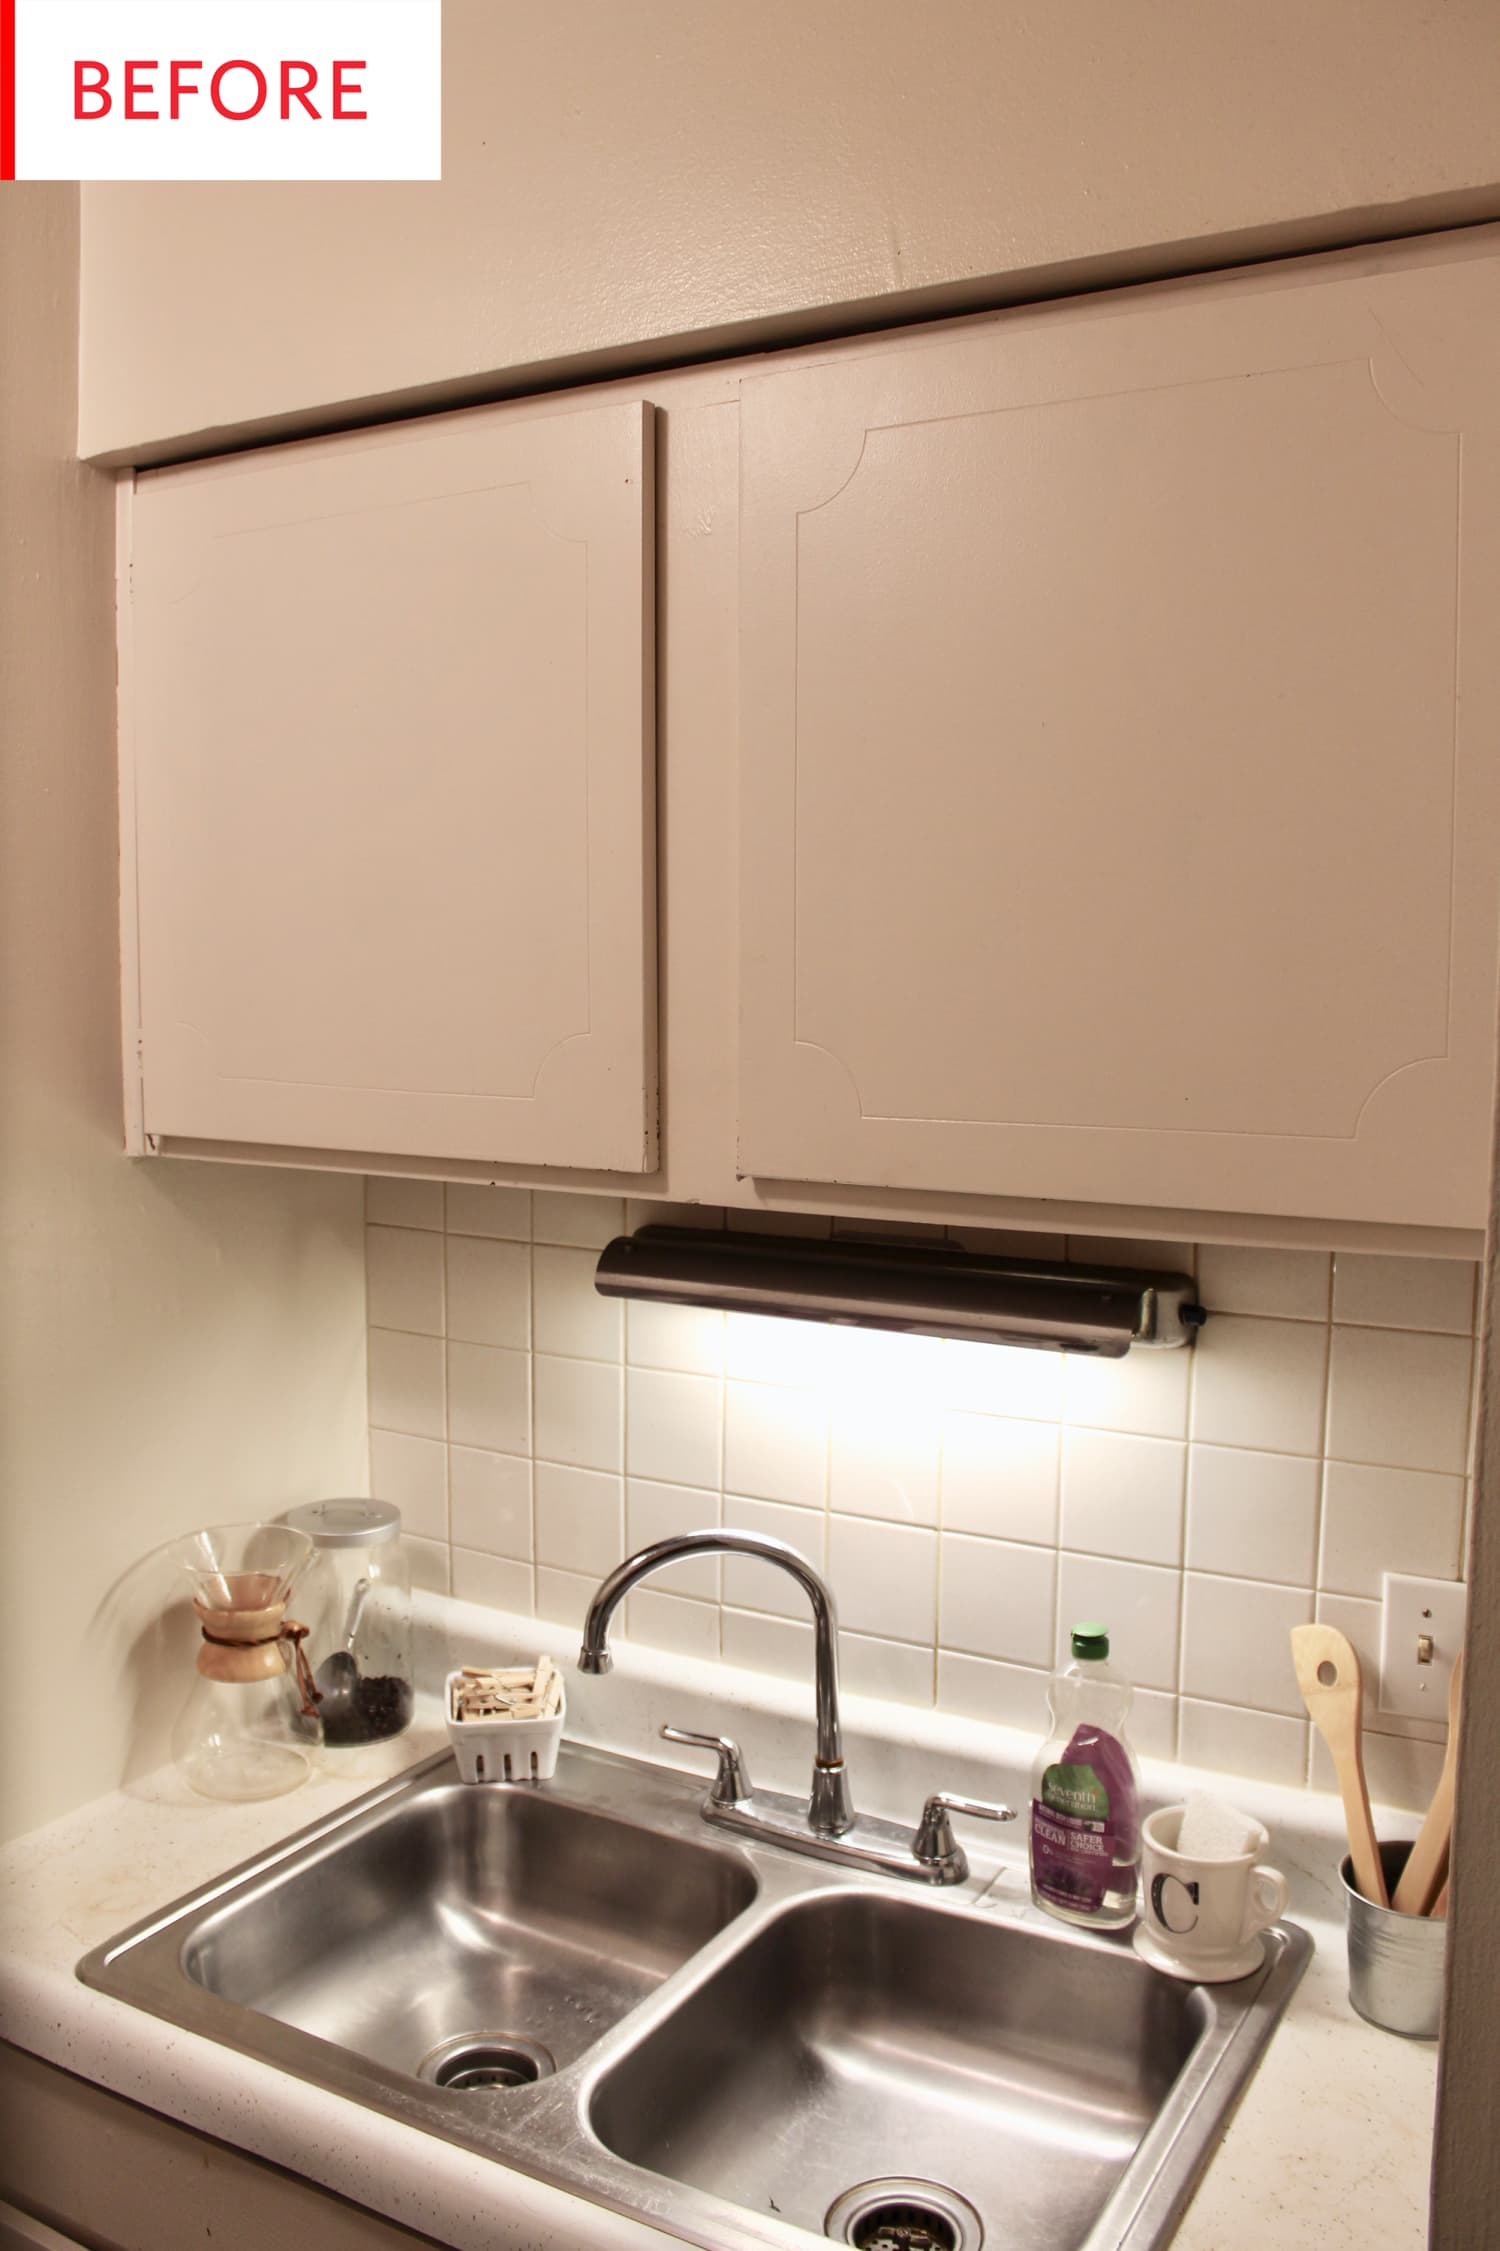 Before and After: A Very Satisfying $30 Kitchen Cabinet Upgrade